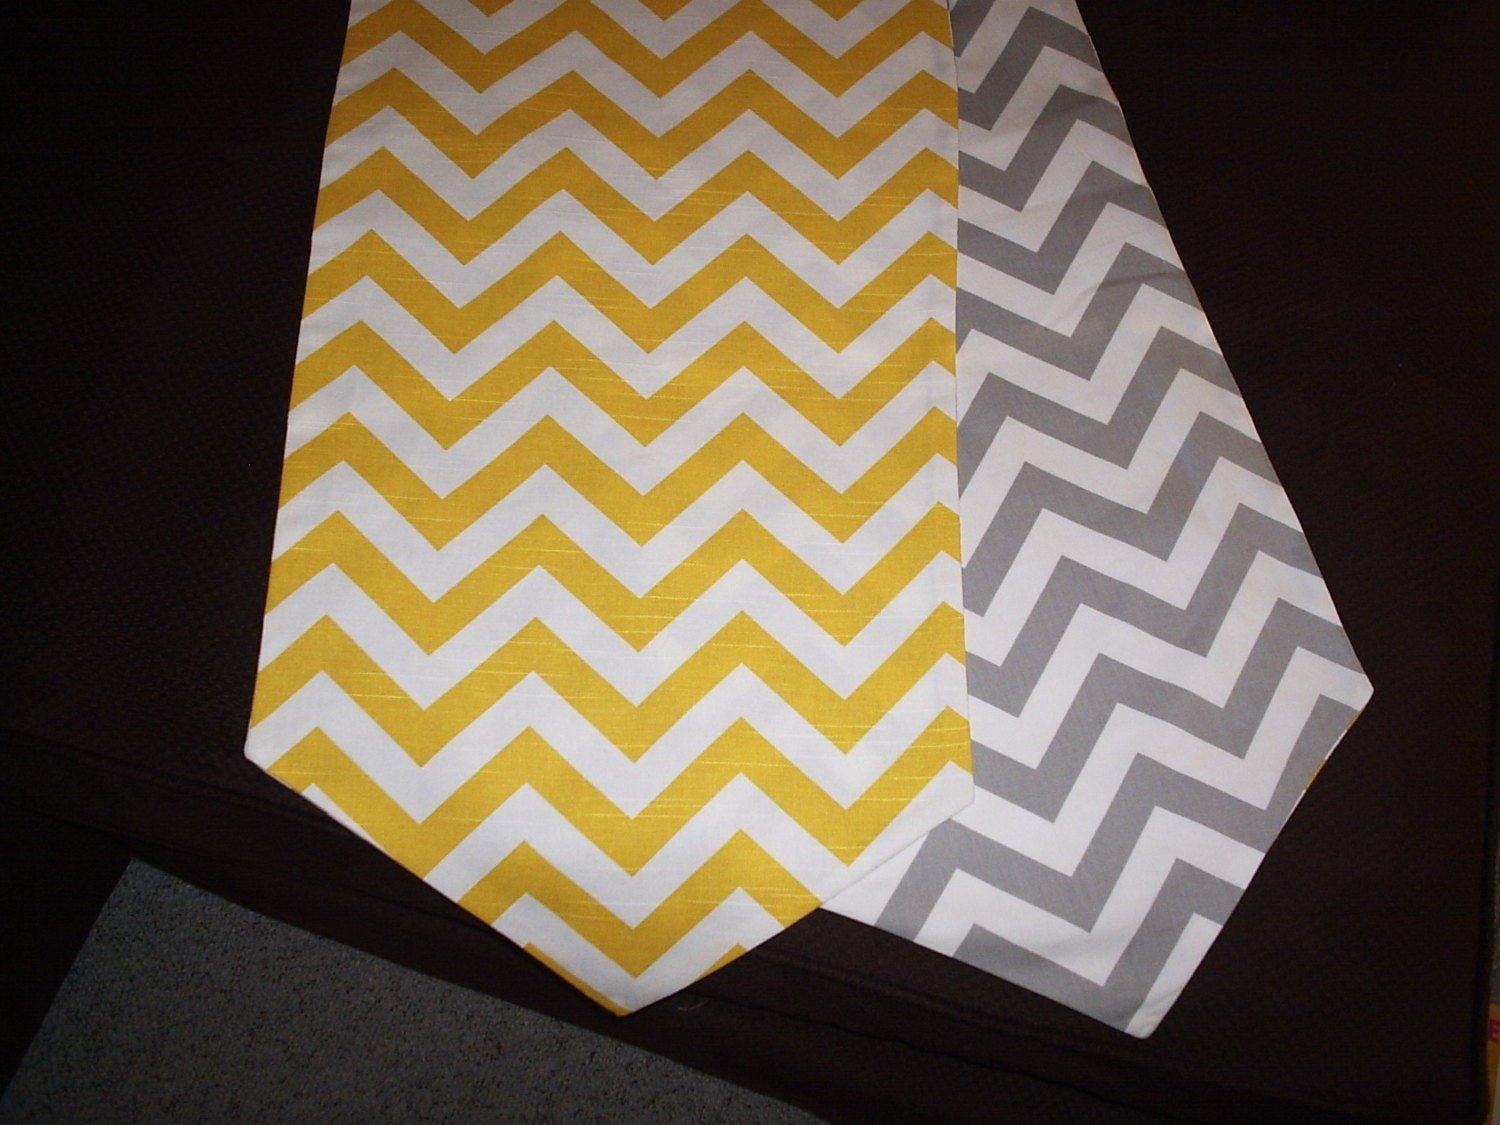 yellow and gray reversible chevron table runner with pointed. Black Bedroom Furniture Sets. Home Design Ideas